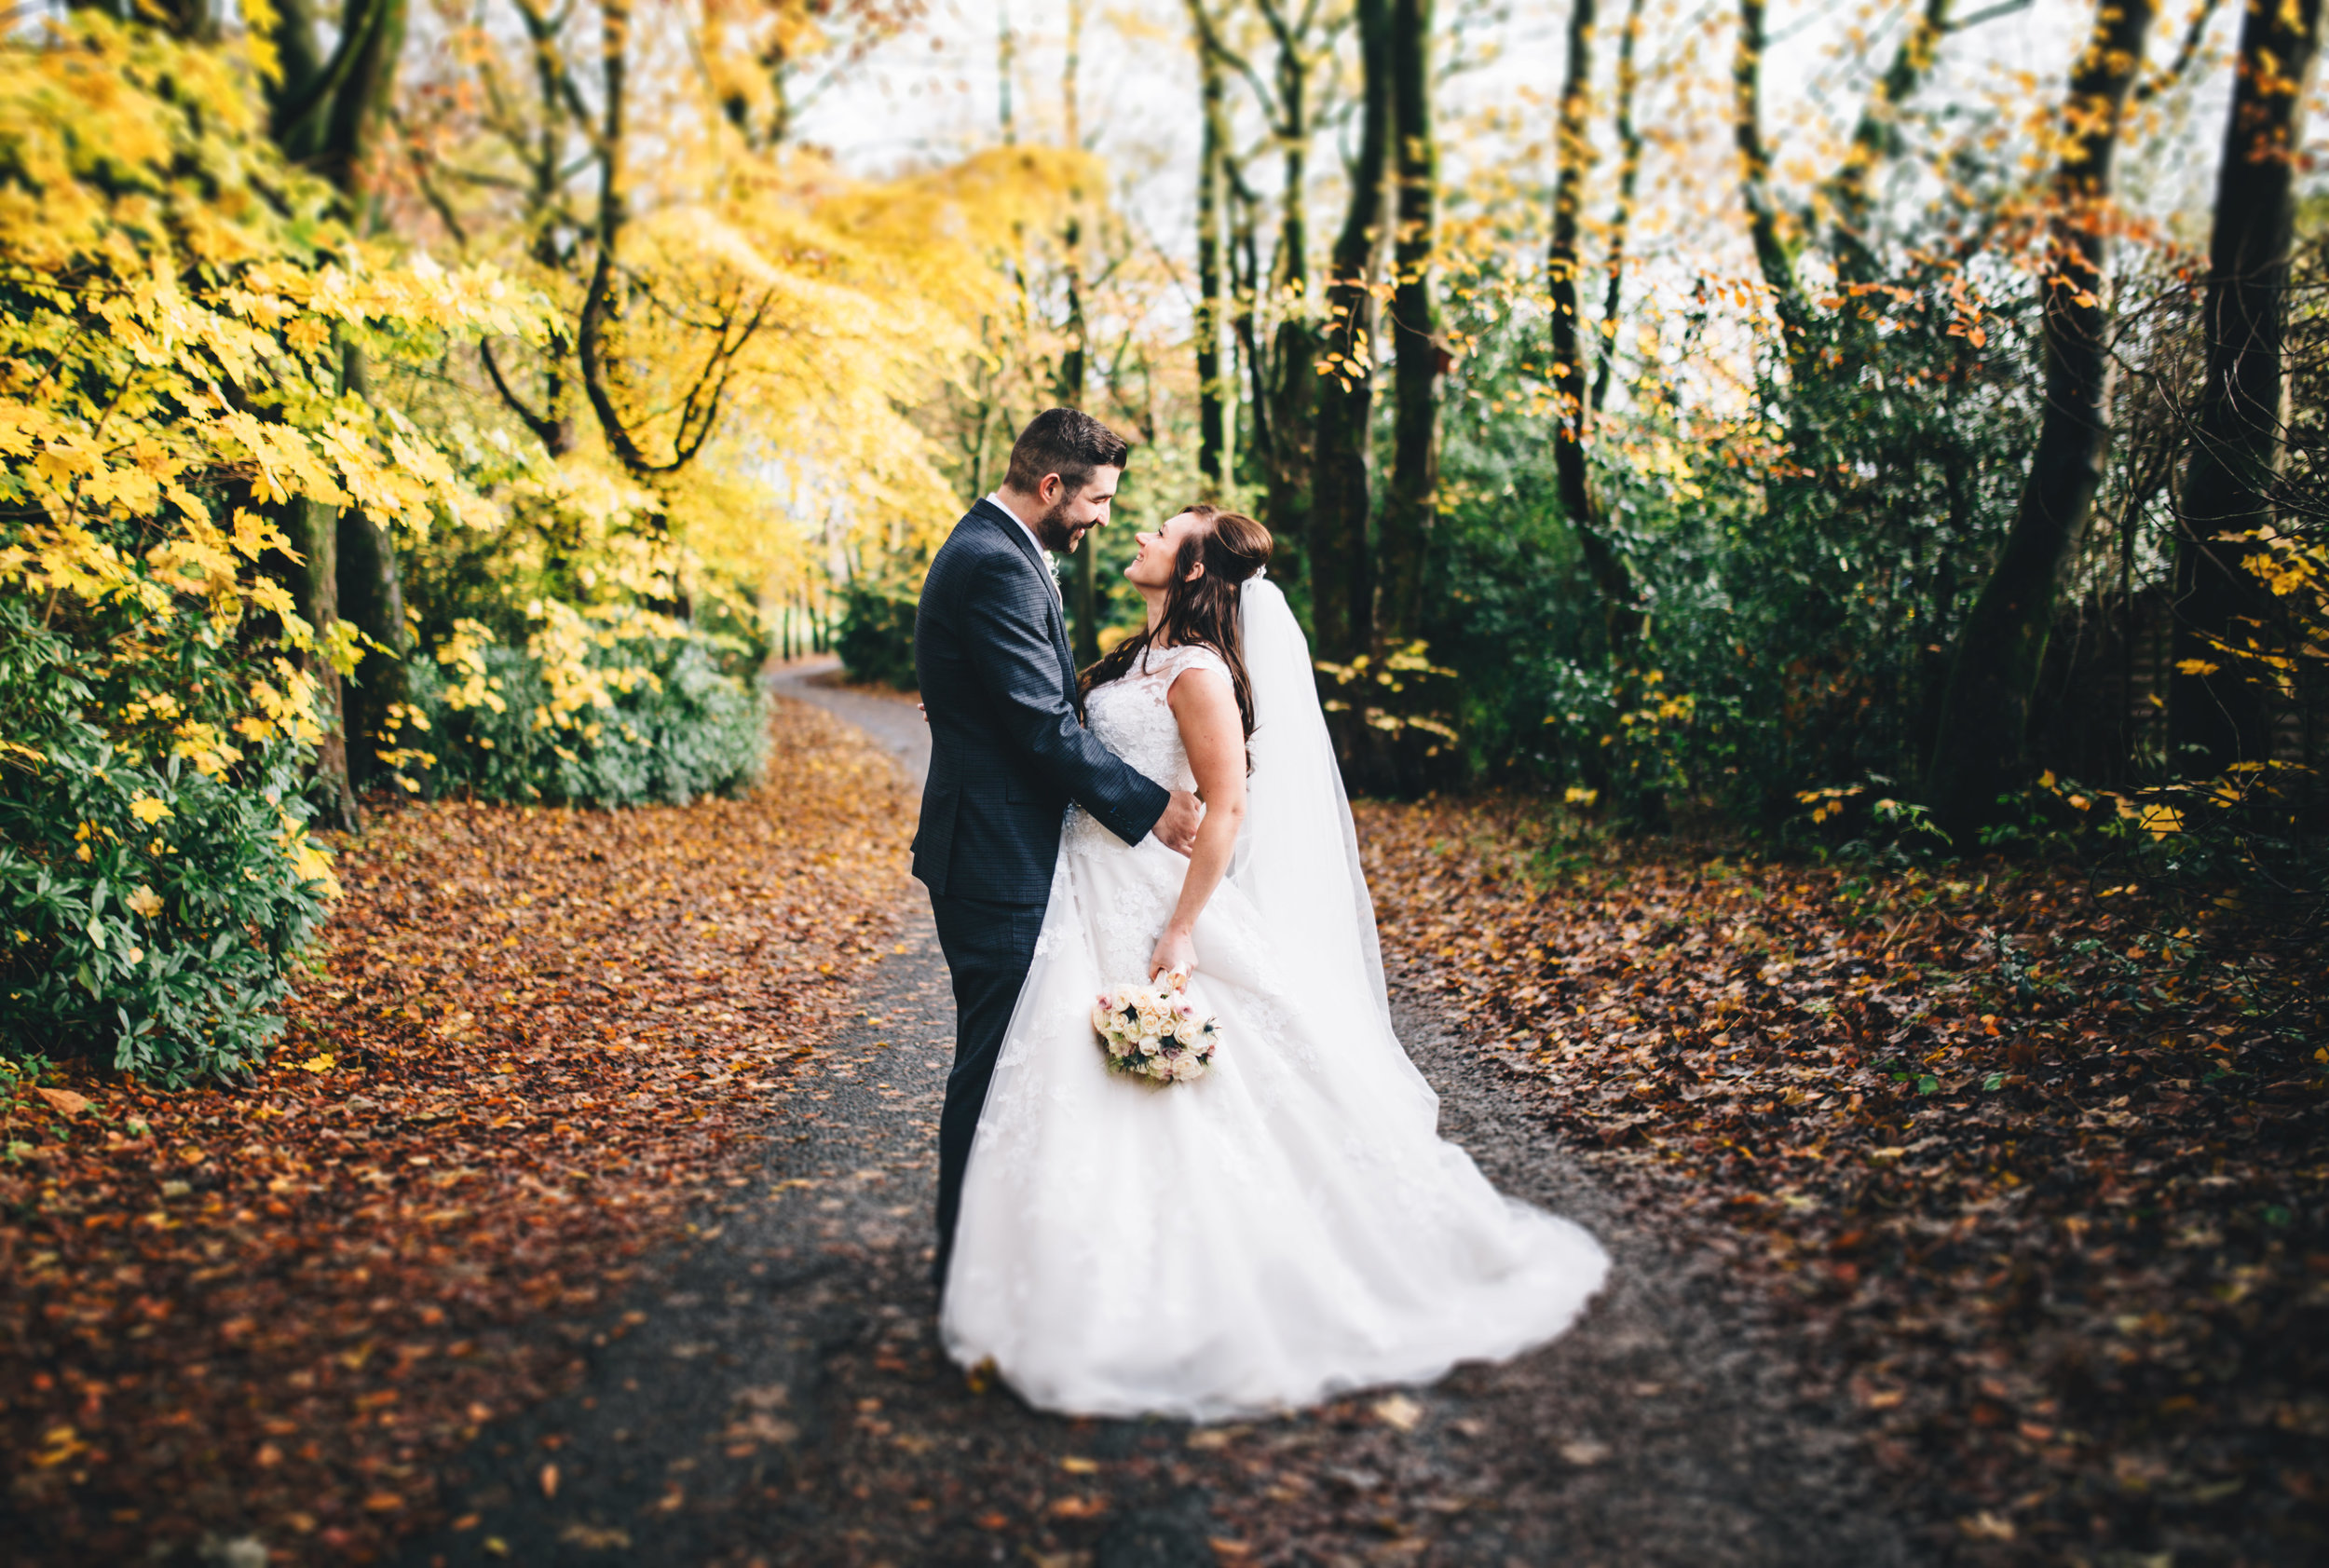 Ashfield House Wedding Pictures - an autumn wedding